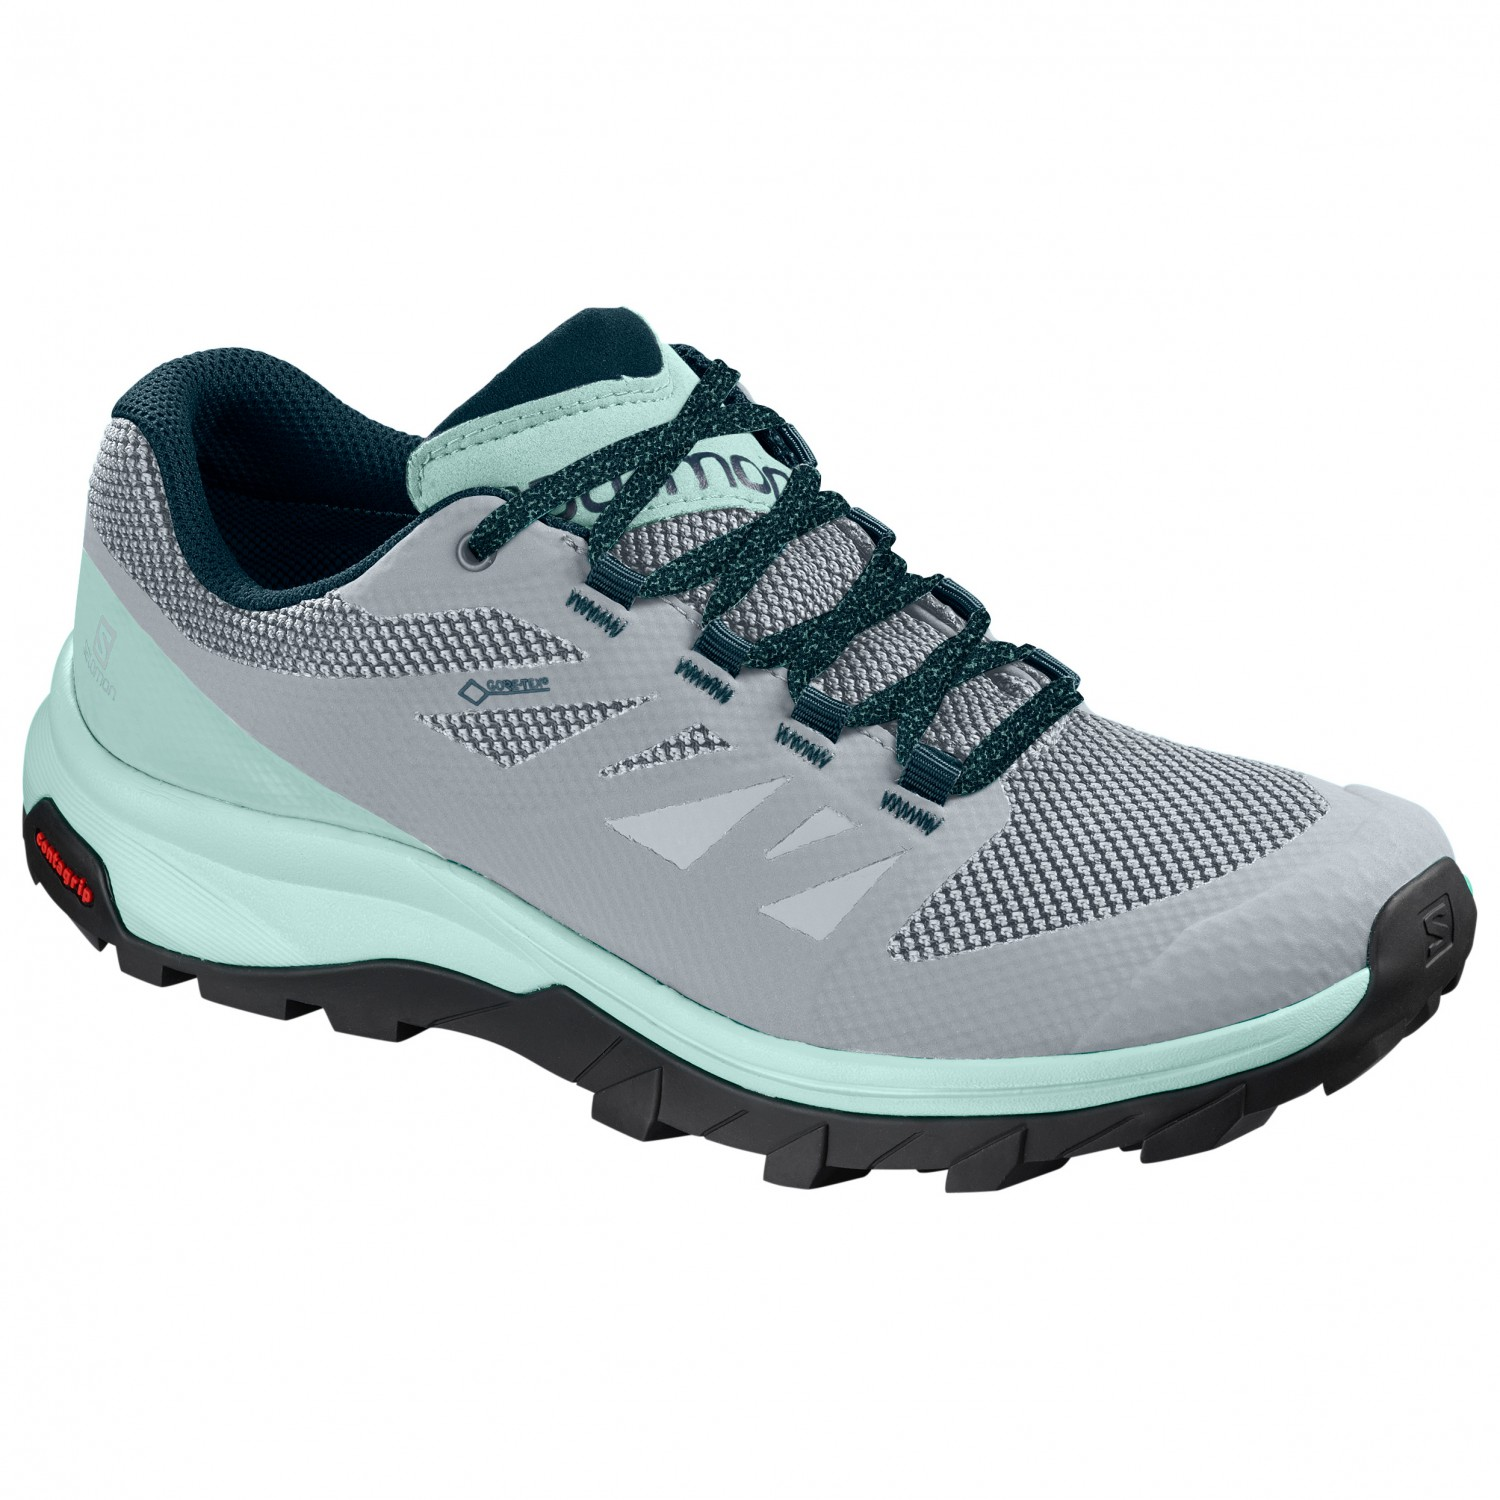 Salomon Outline GTX Multisportschuhe Damen